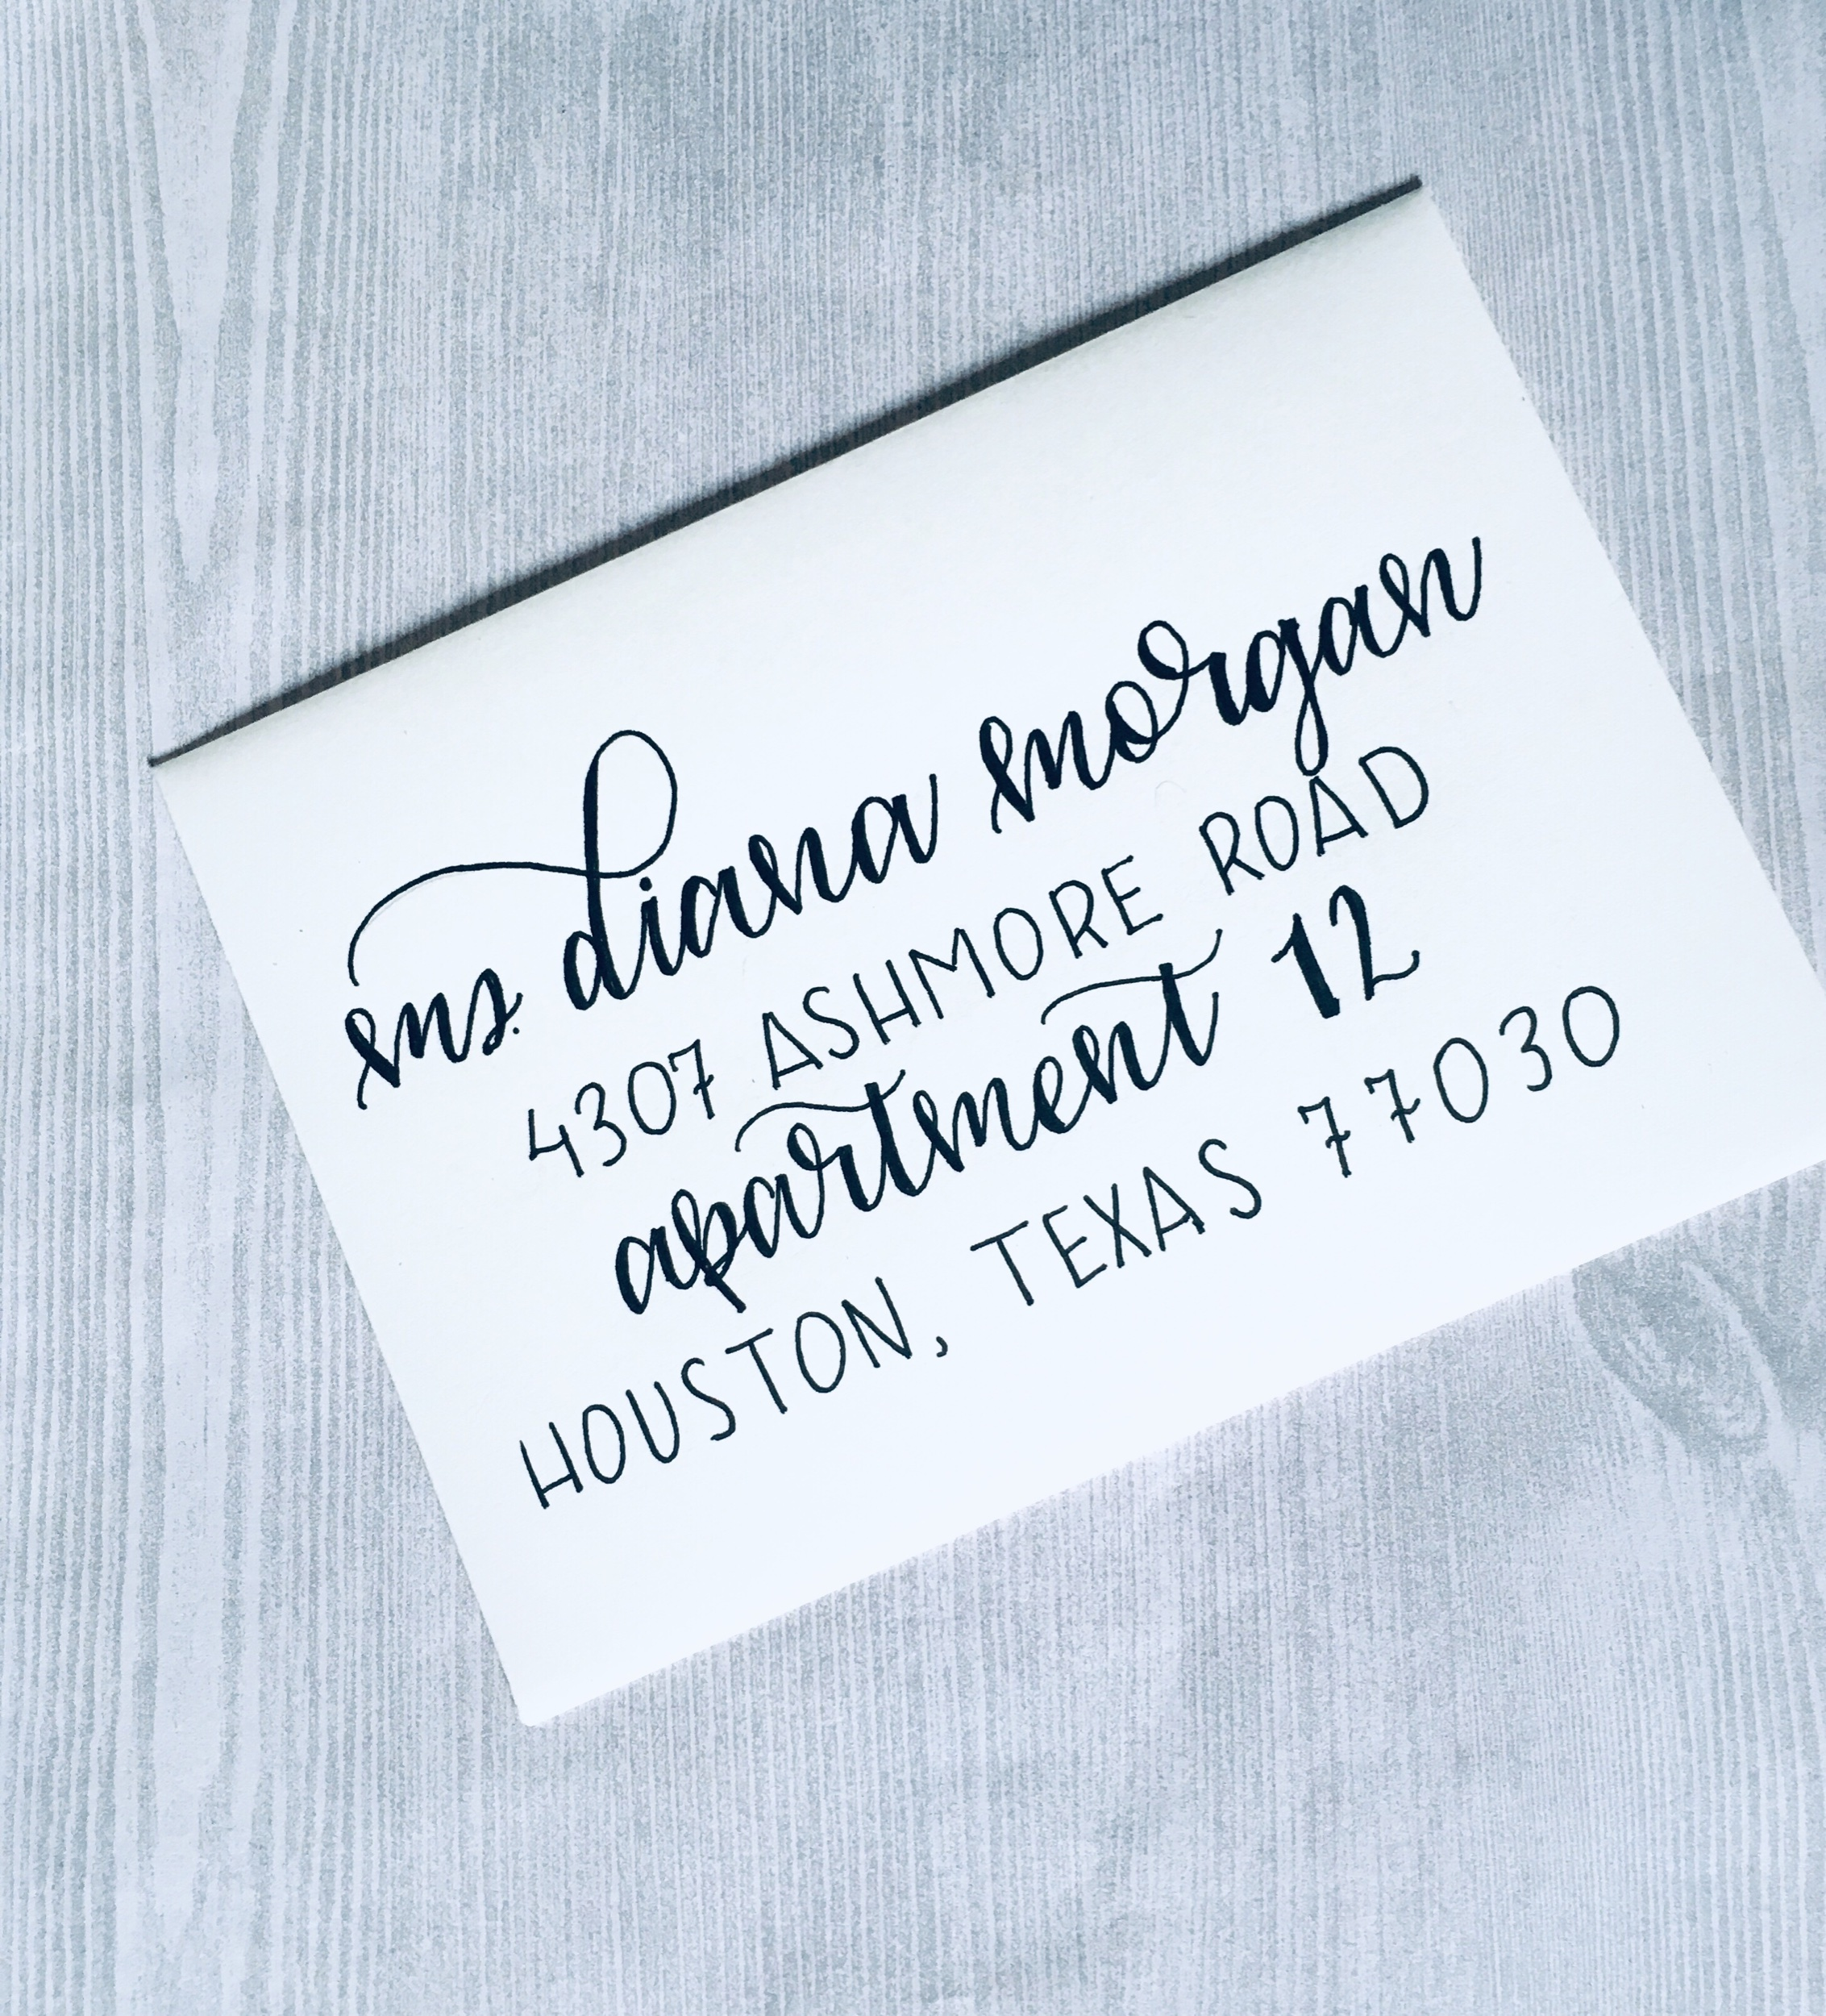 In this envelope I combined both a script font in faux calligraphy and a Sans serif style.